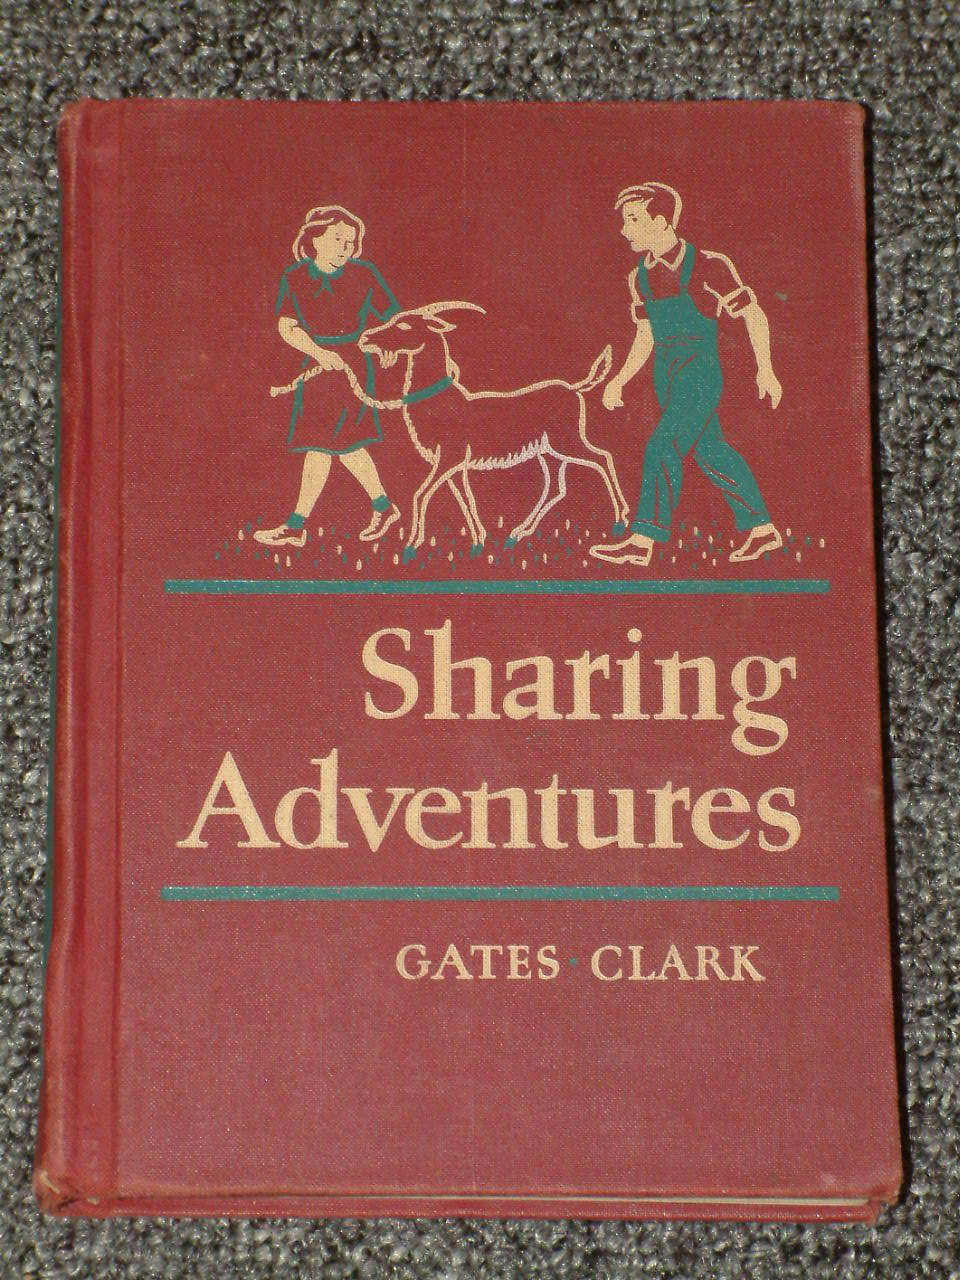 Sharing Adventures Basic Reader Gates and Clark 1954